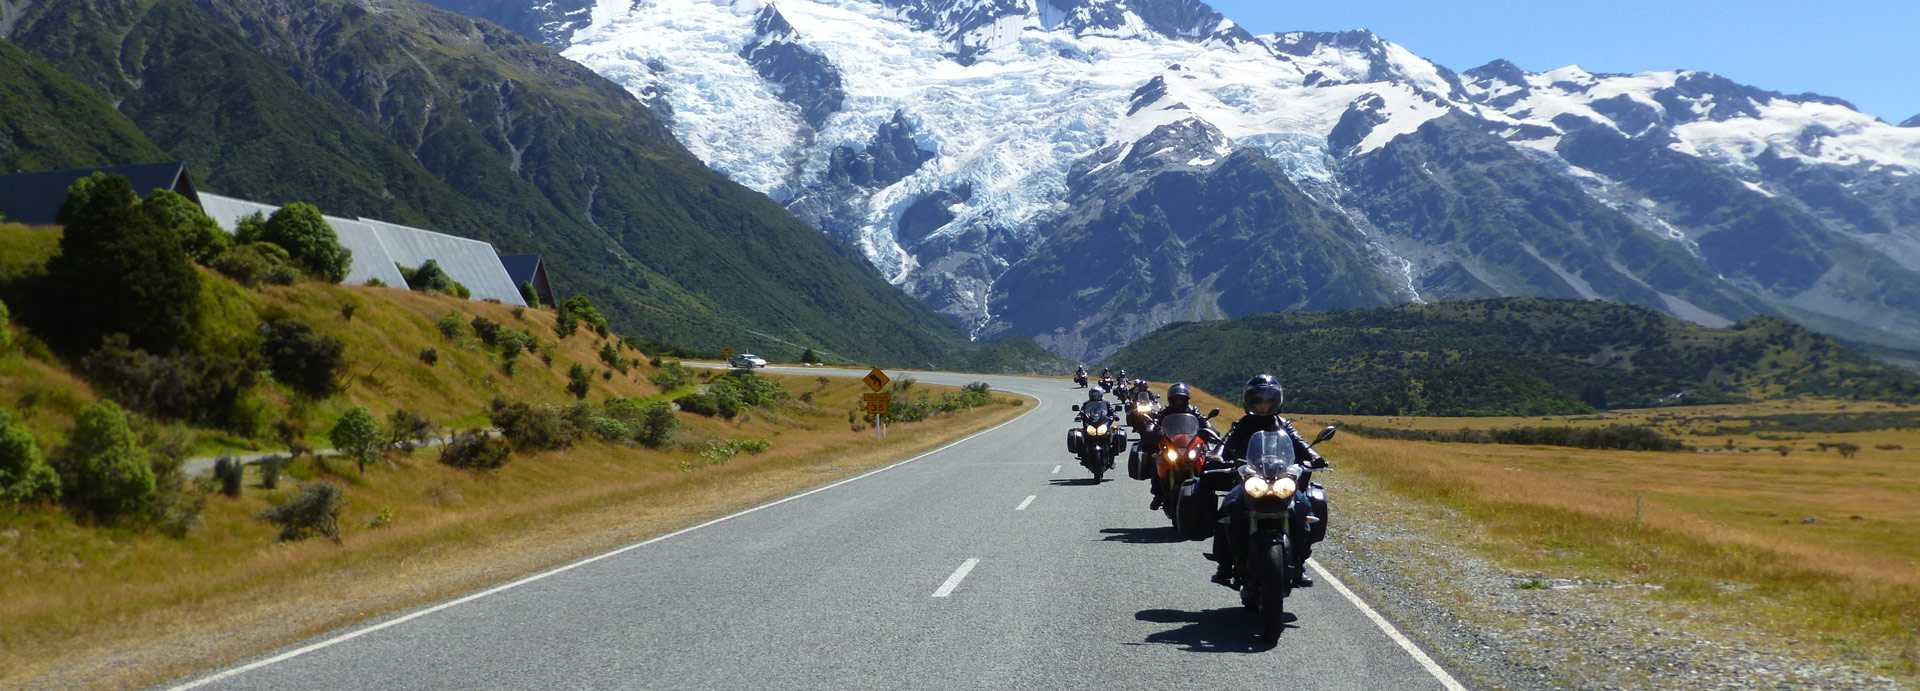 New Zealand Motorcycle Tours, Rentals and Hire NZ